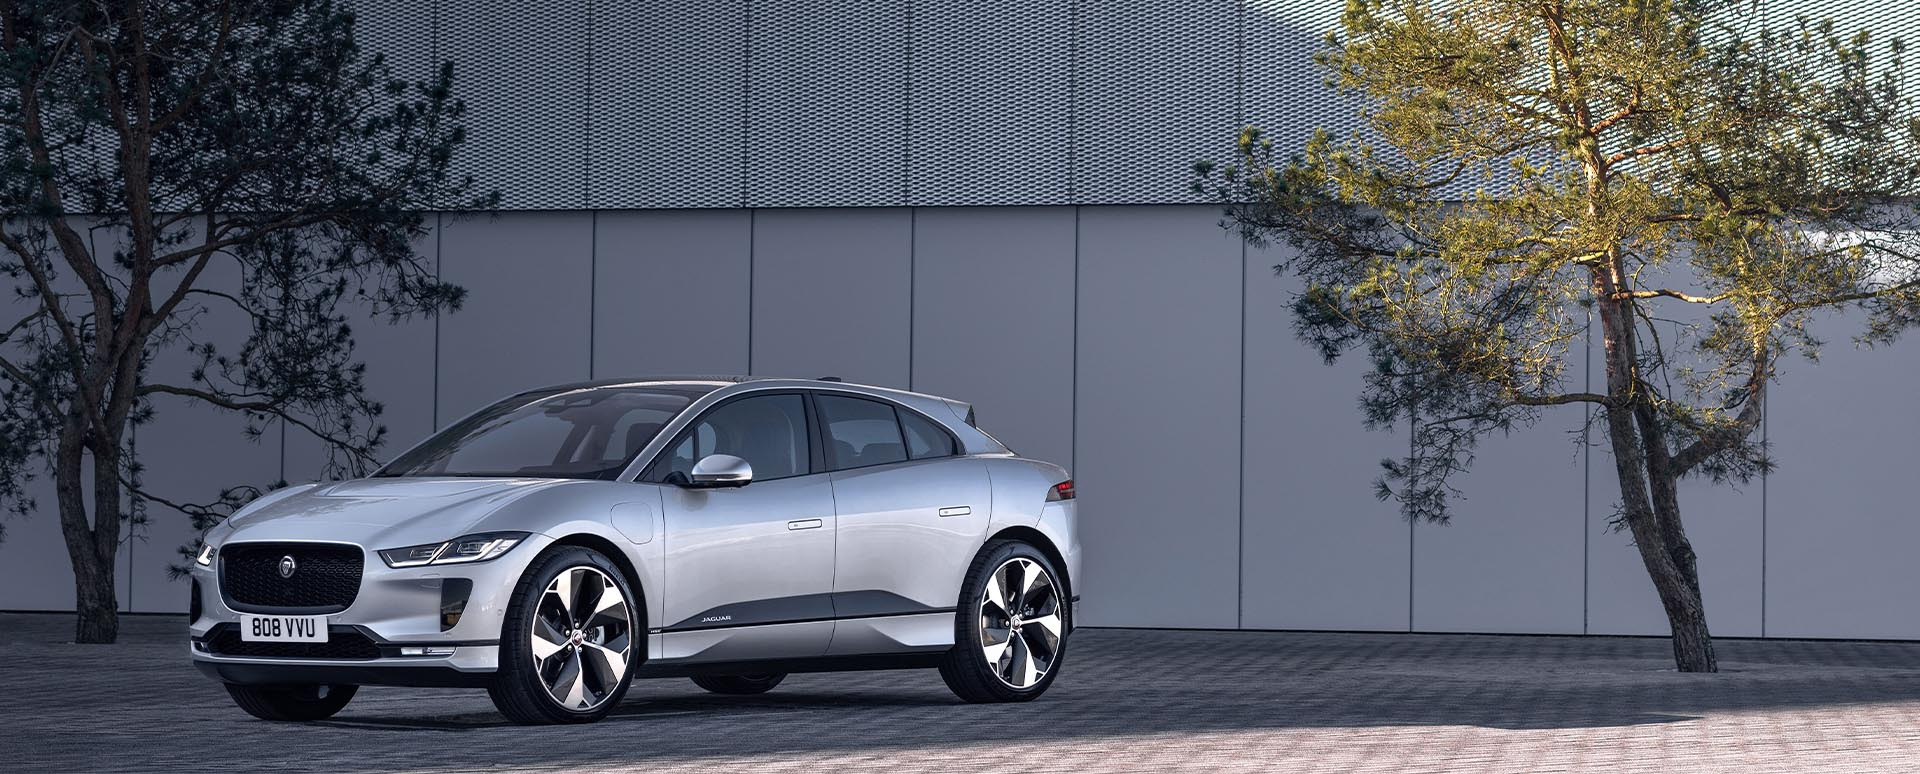 jaguar i-pace parked in front of tree